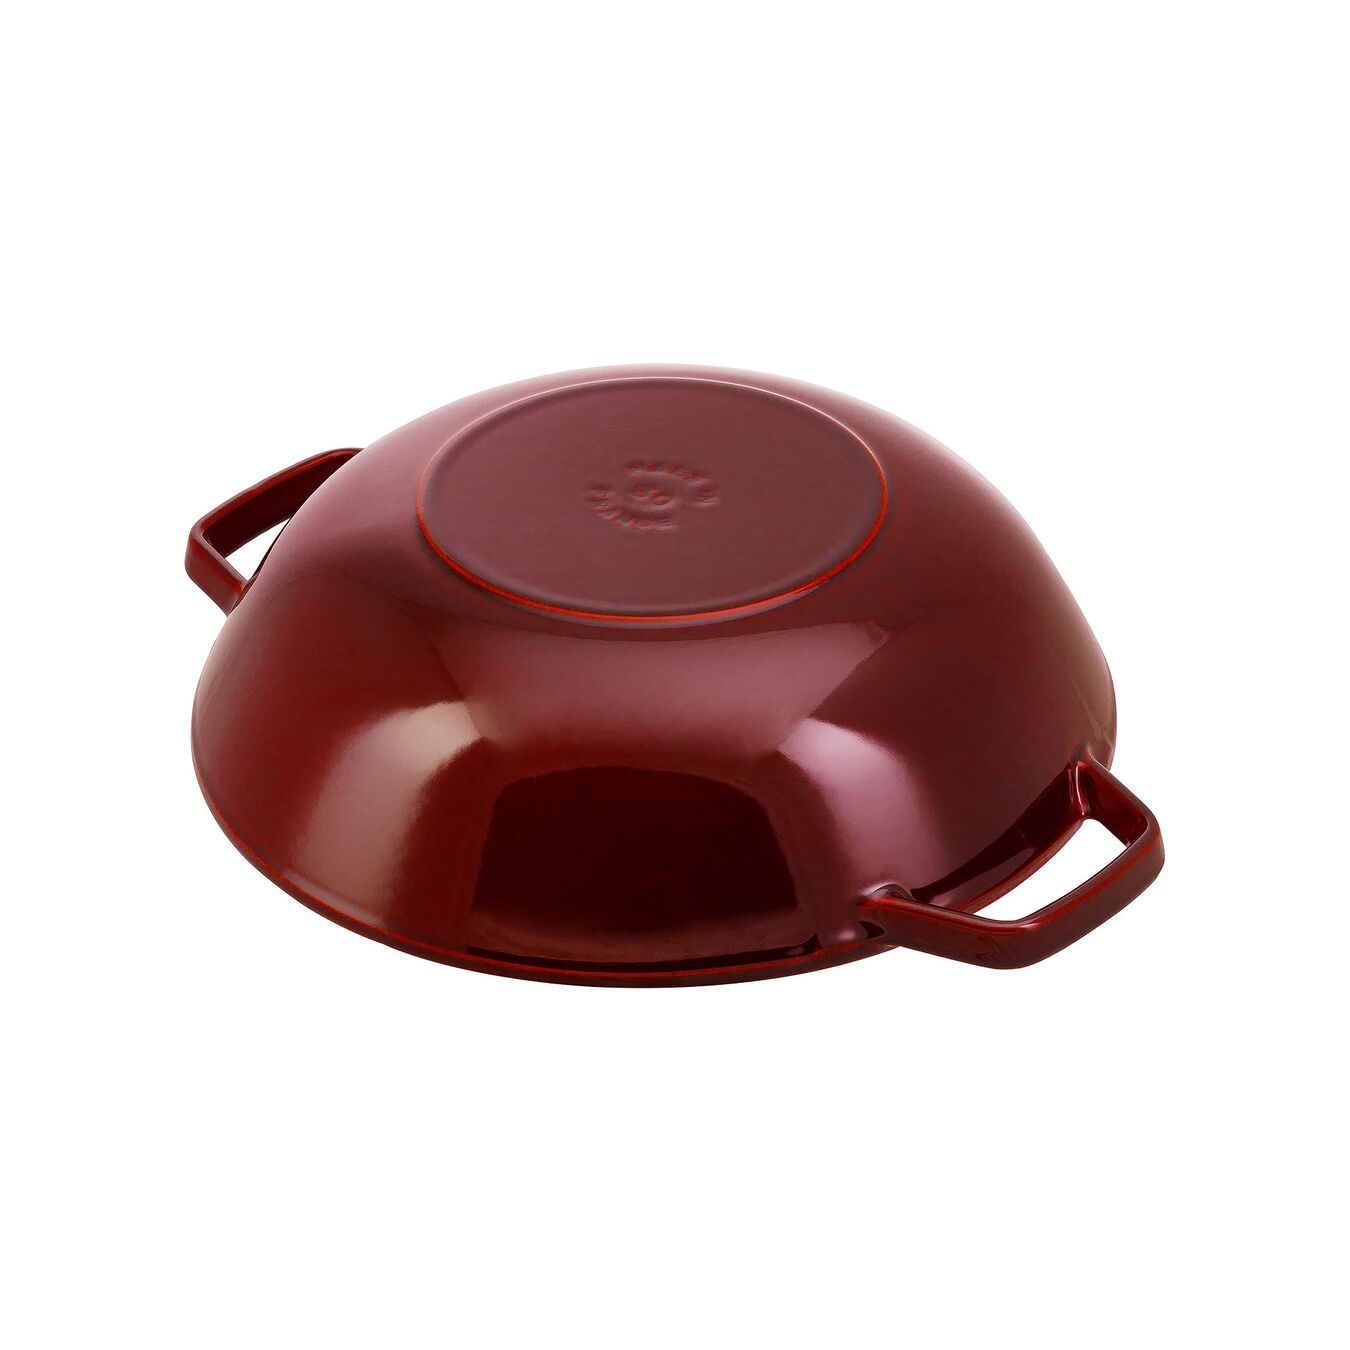 30 cm / 12 inch Wok with glass lid, grenadine-red,,large 3